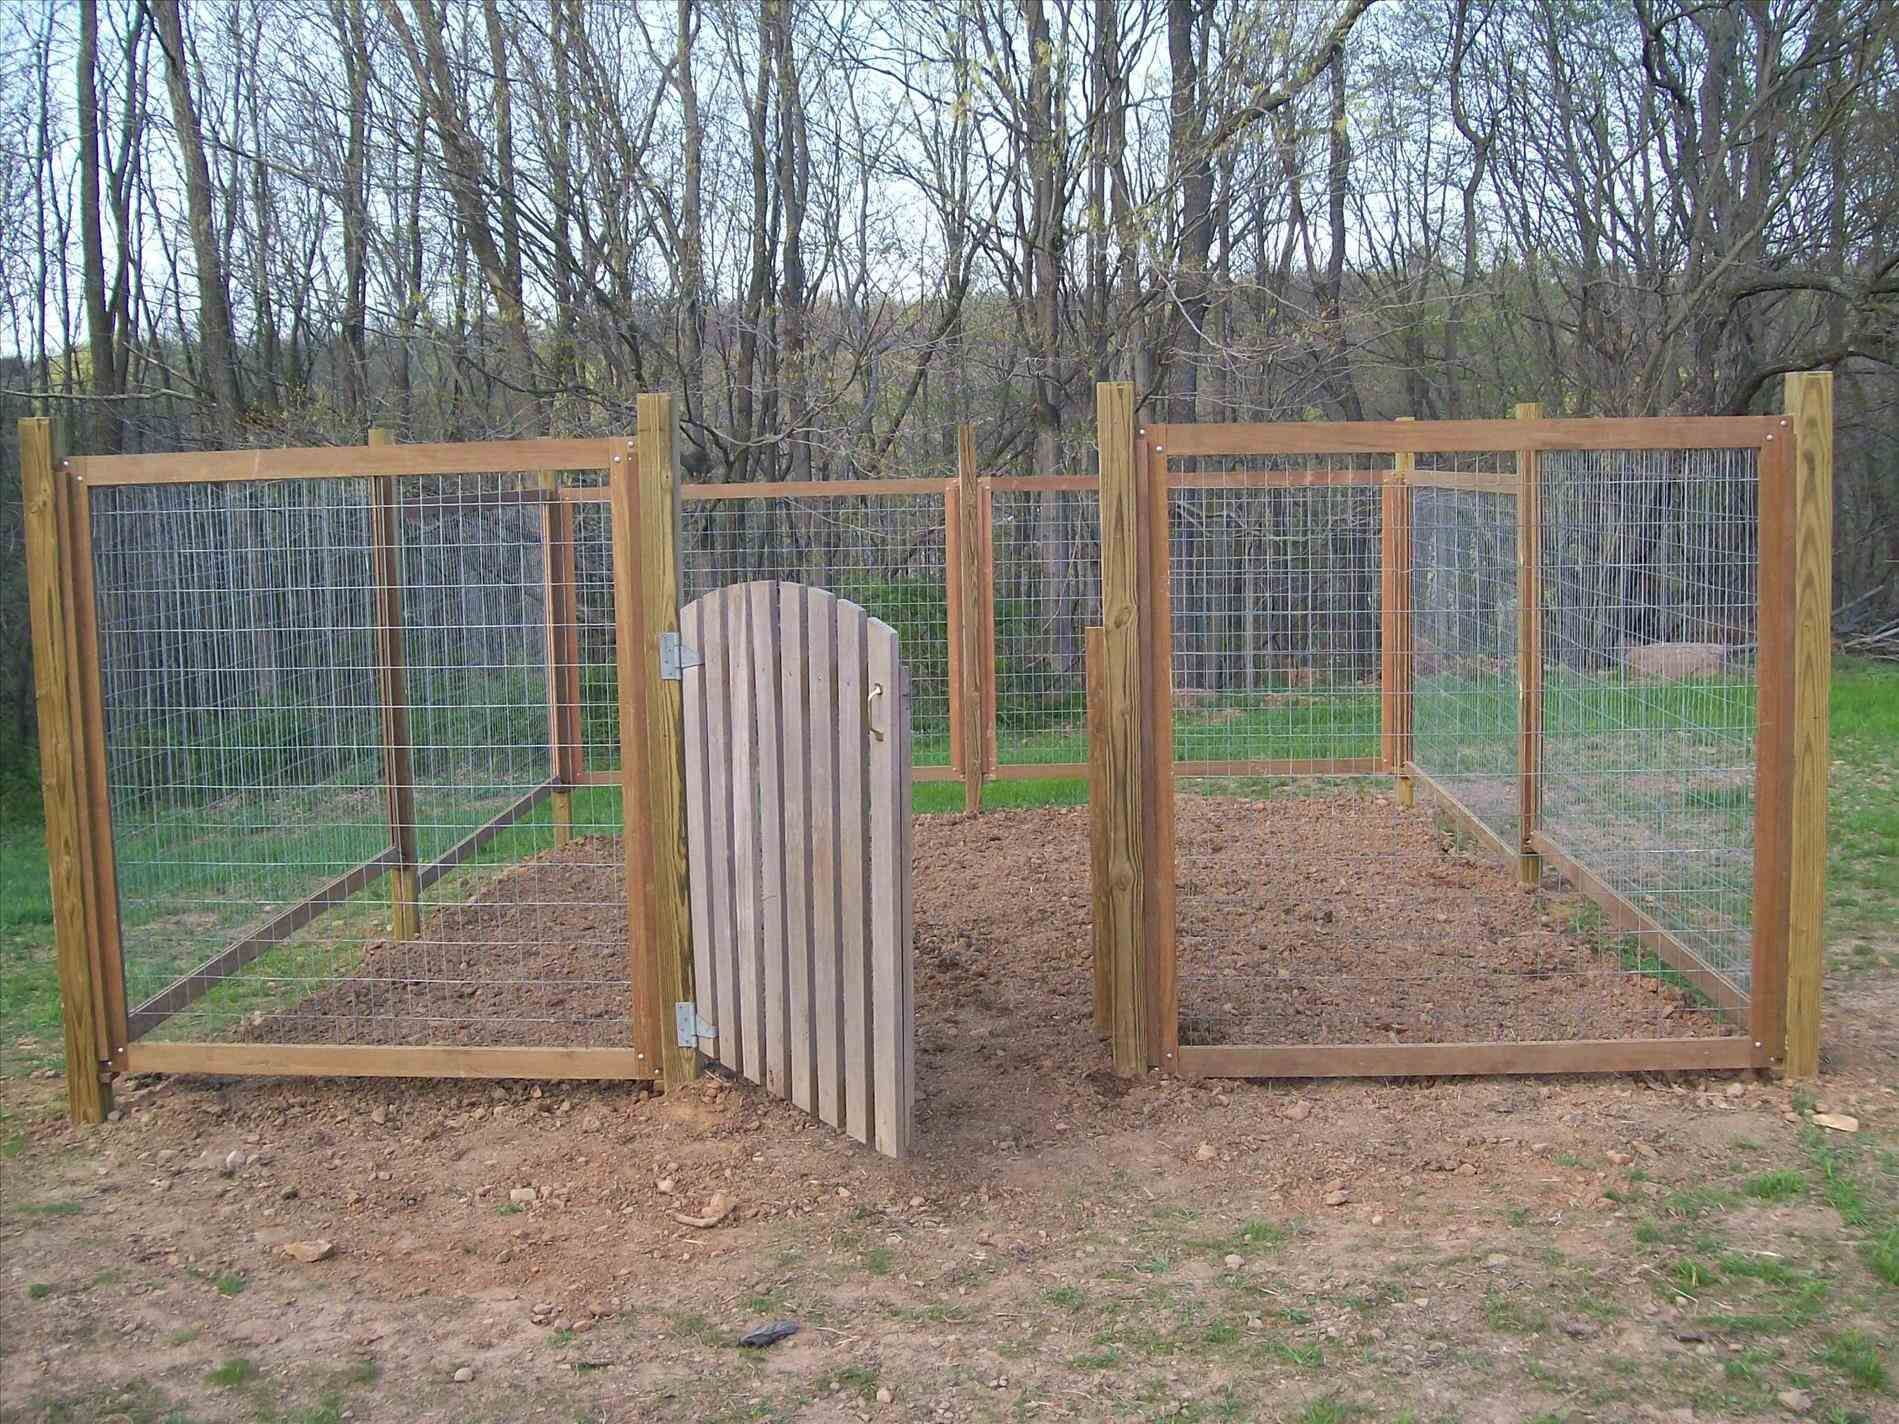 Soulful Image Result Fence Around Garden To Keep Deer Out Image Result Fence Around Garden To Keep Deer Out Yard Build Fence Around Garden Fence Around Raised Garden Beds garden Fence Around Garden